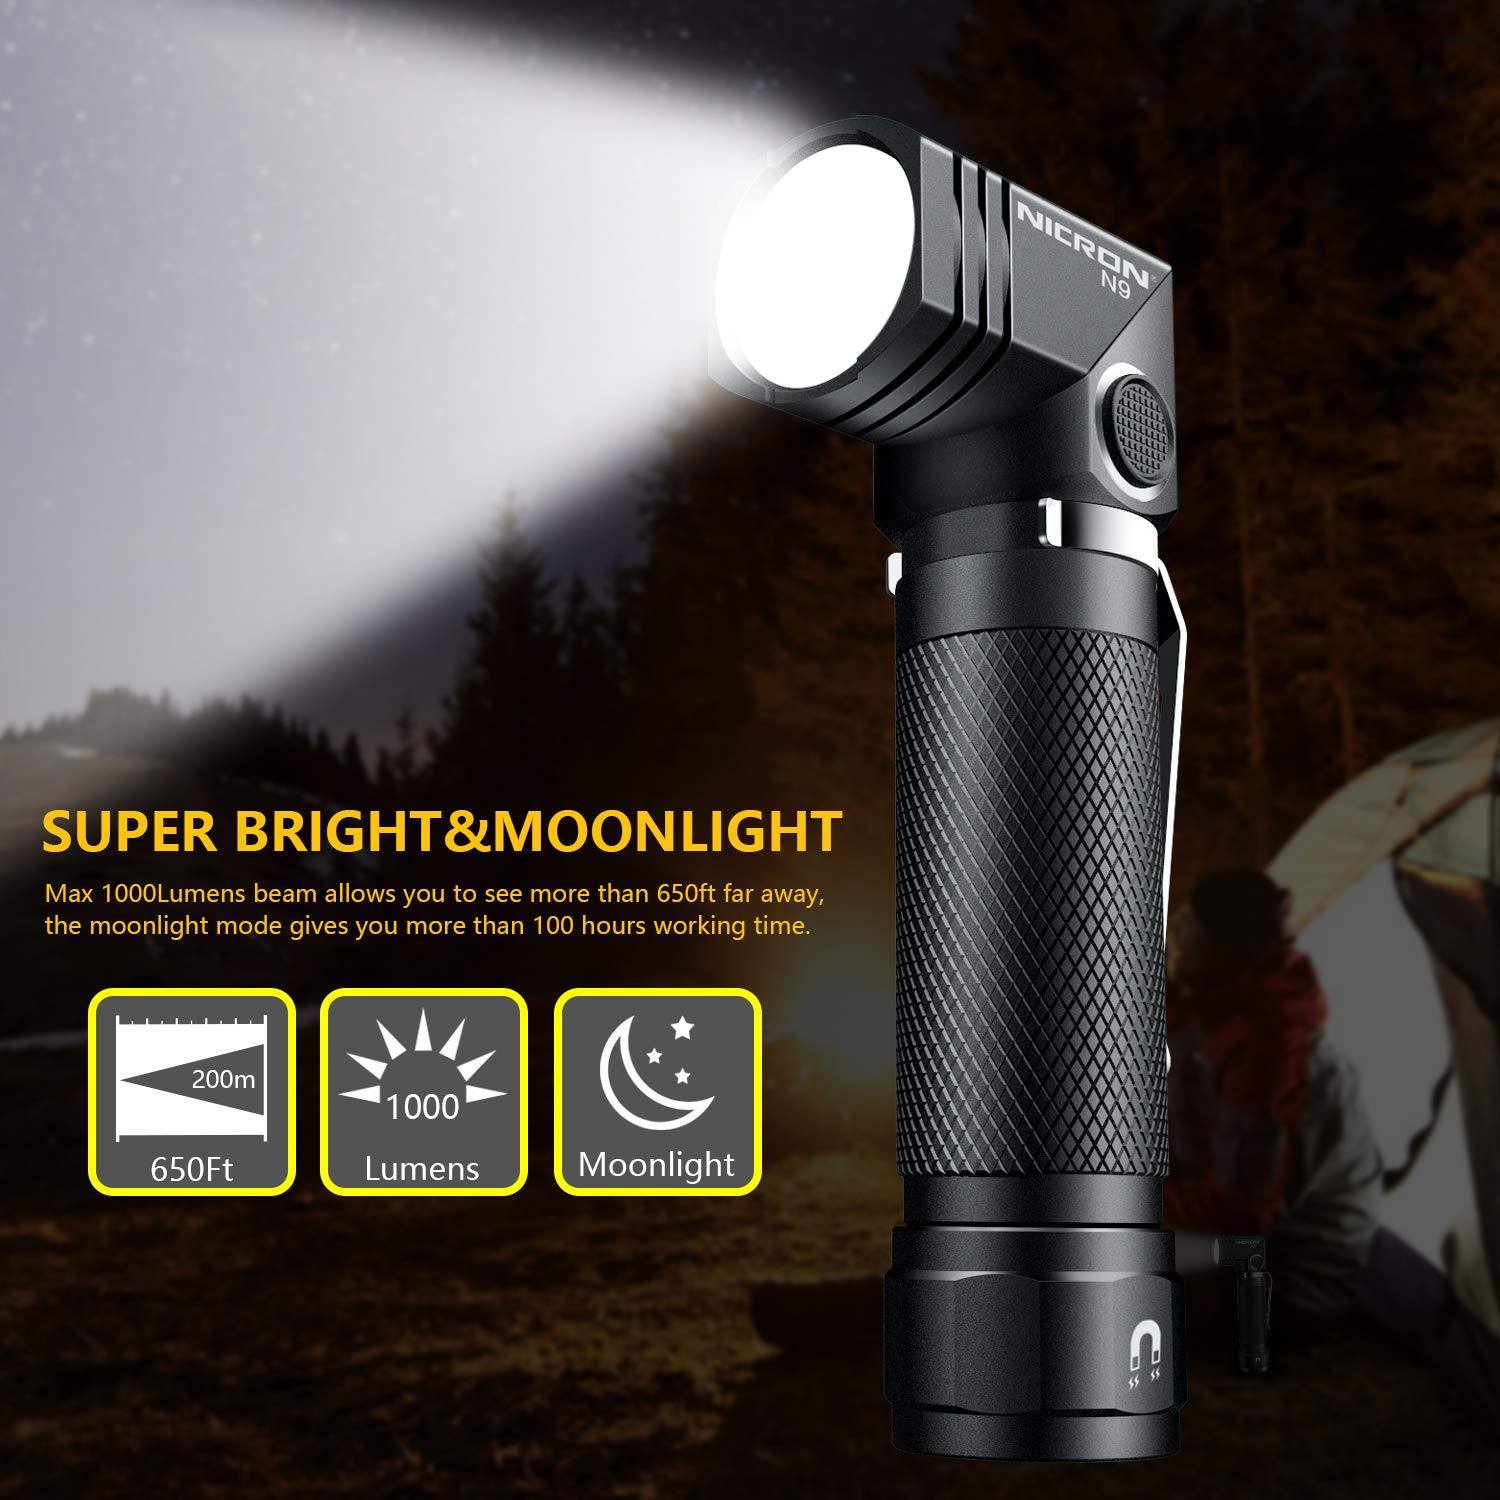 NICRON N9,6 mode Super Bright LED 1000 lumen,90 Degree Rotate,magnet tail,IP65 Waterproof for Outdoor,Camping,Everyday Home use Not Including Battery Flashlight,18650 flash light